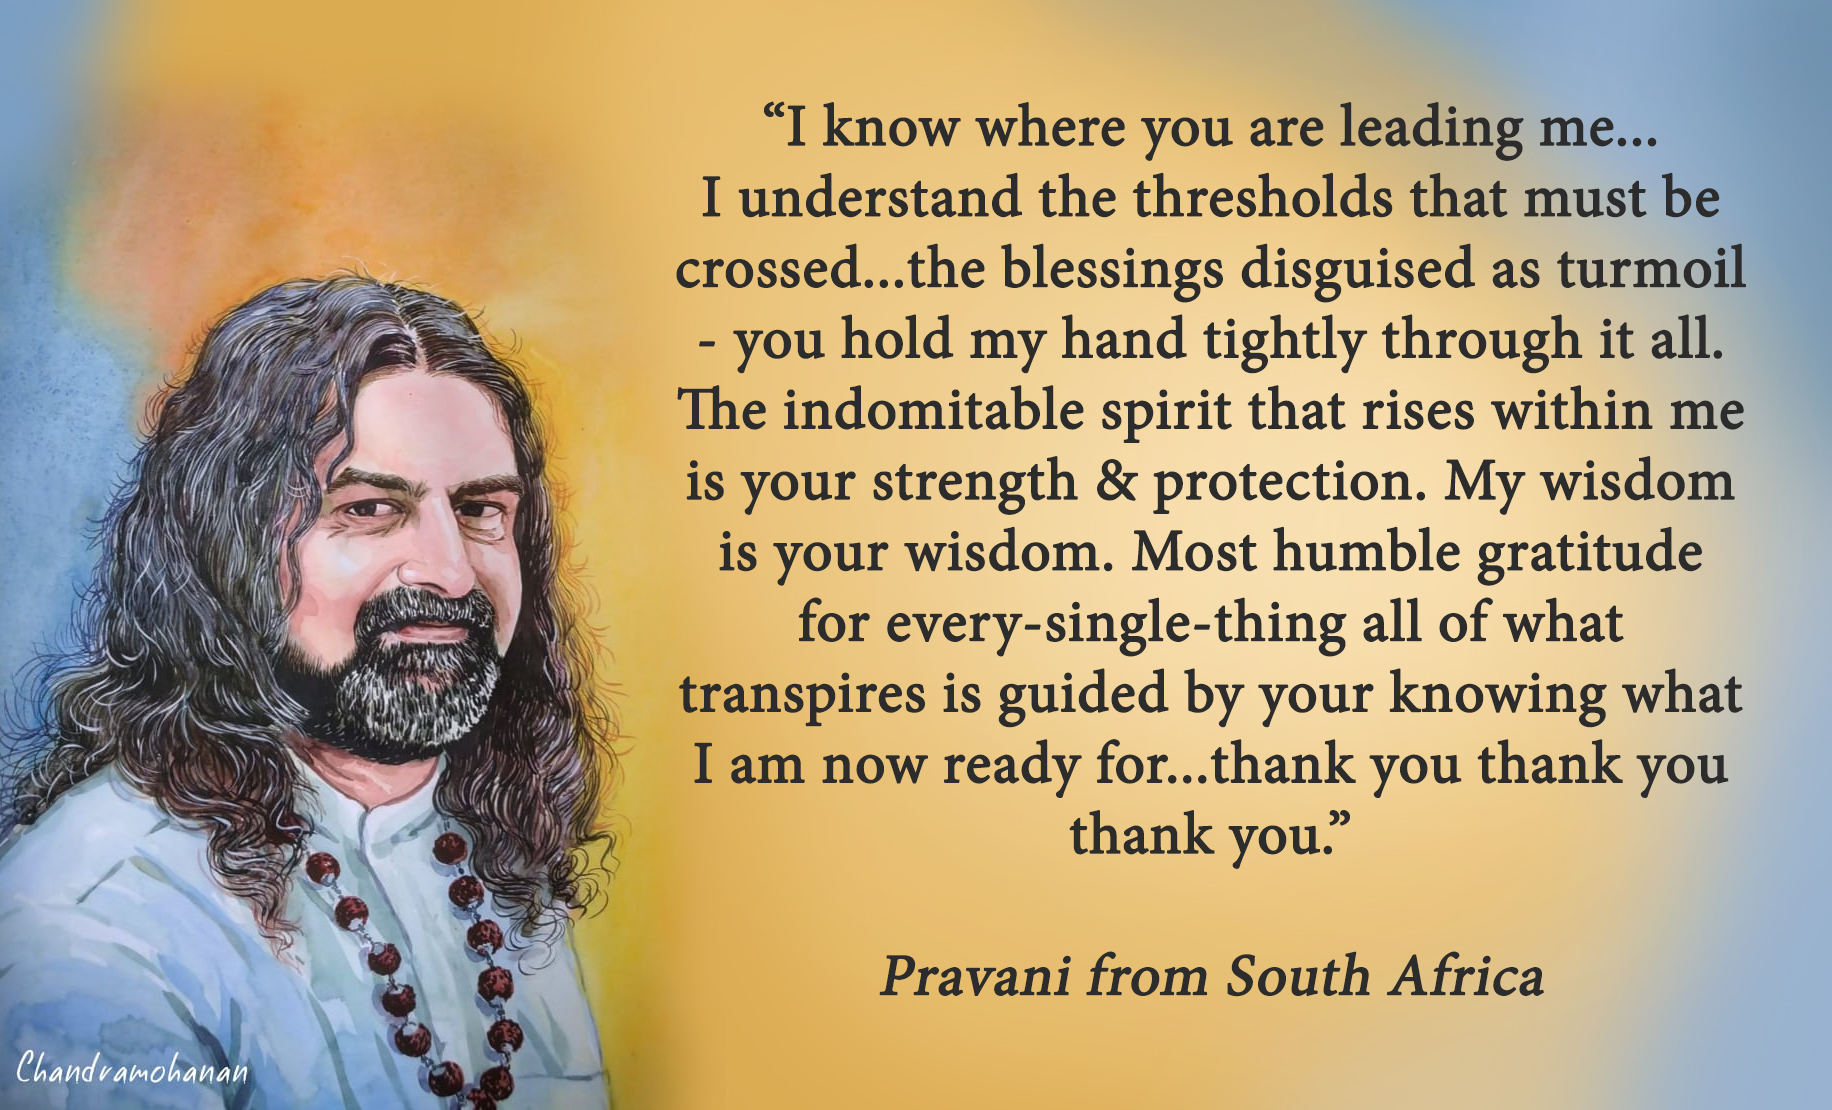 Pravani from South Africa